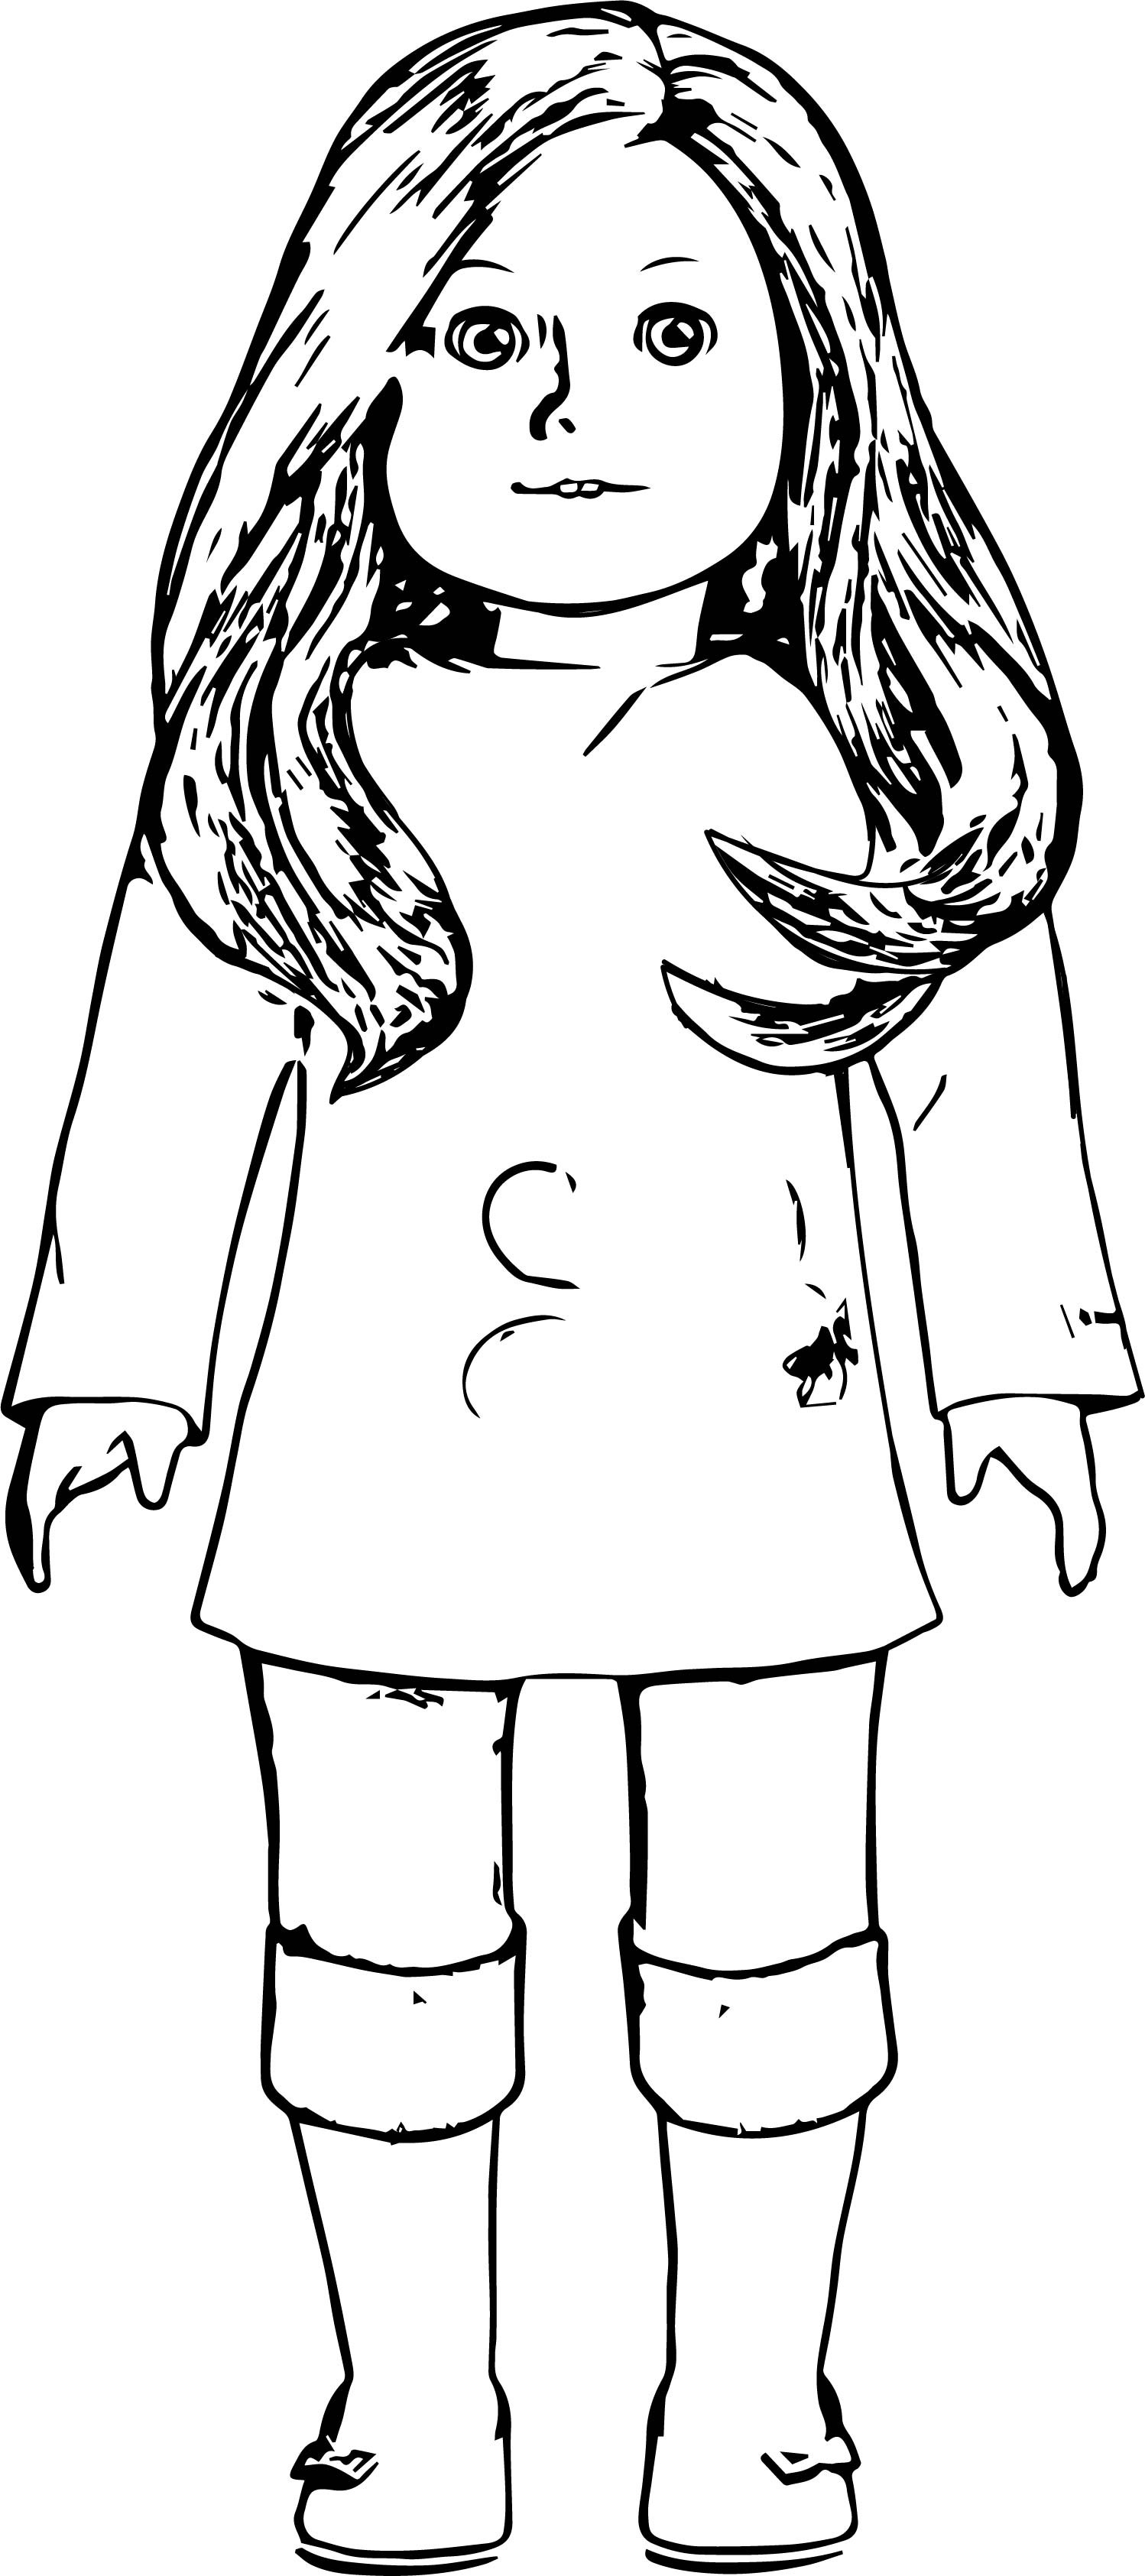 girls colouring pictures free printable coloring pages for girls pictures girls colouring